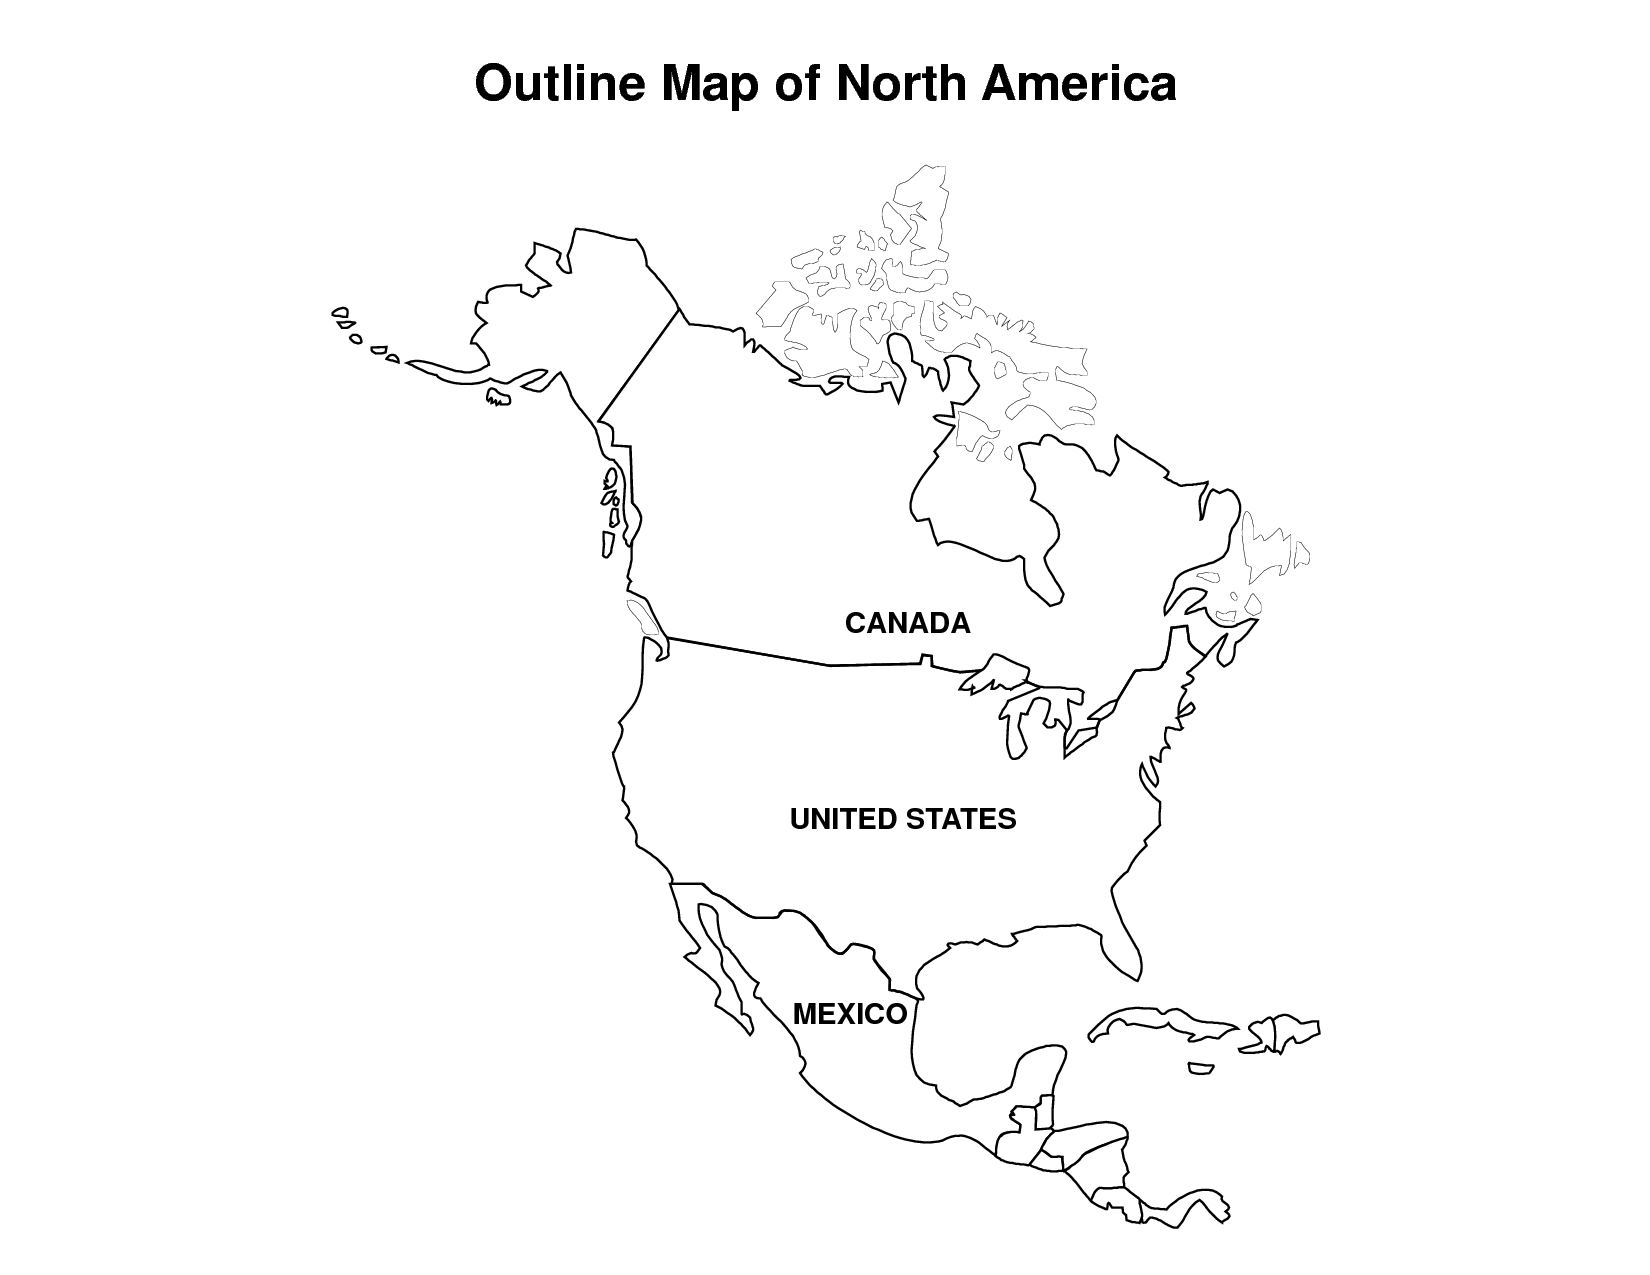 picture about North America Map Printable named Printable Map of North The us pic Define Map of North